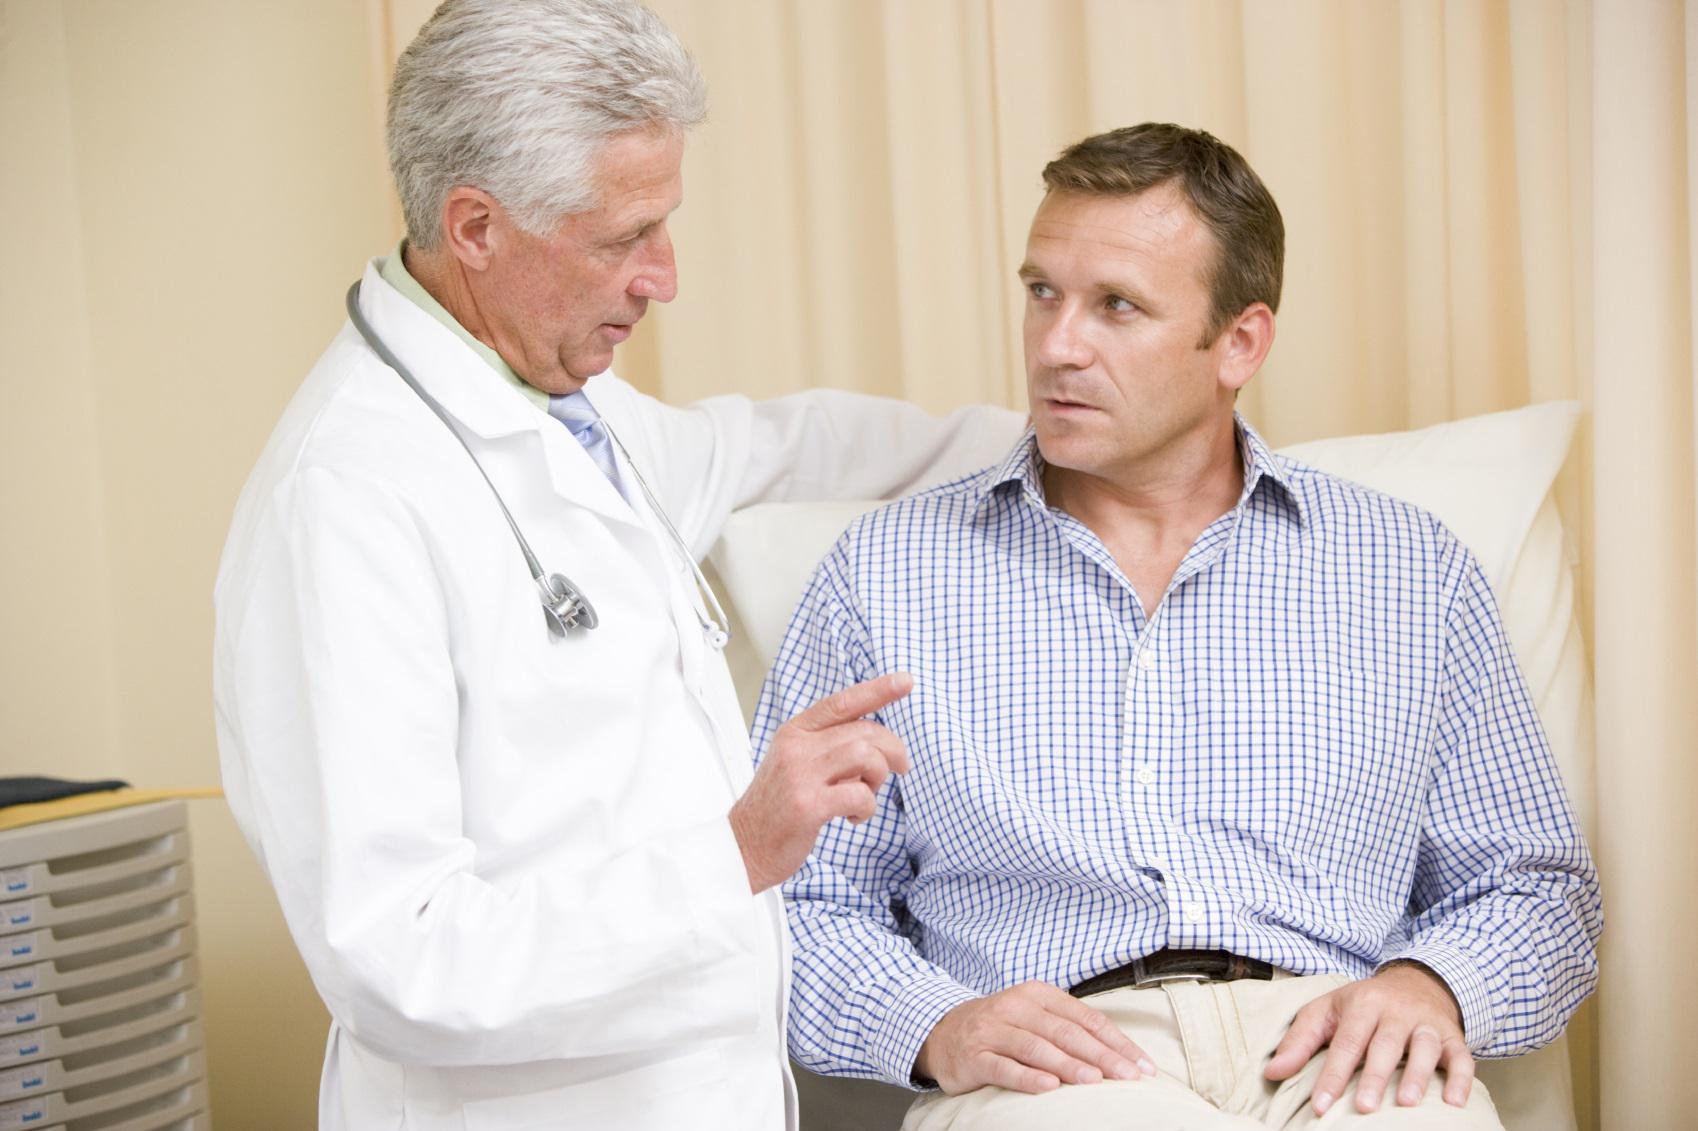 five-signs-its-time-for-men-to-see-a-urologist